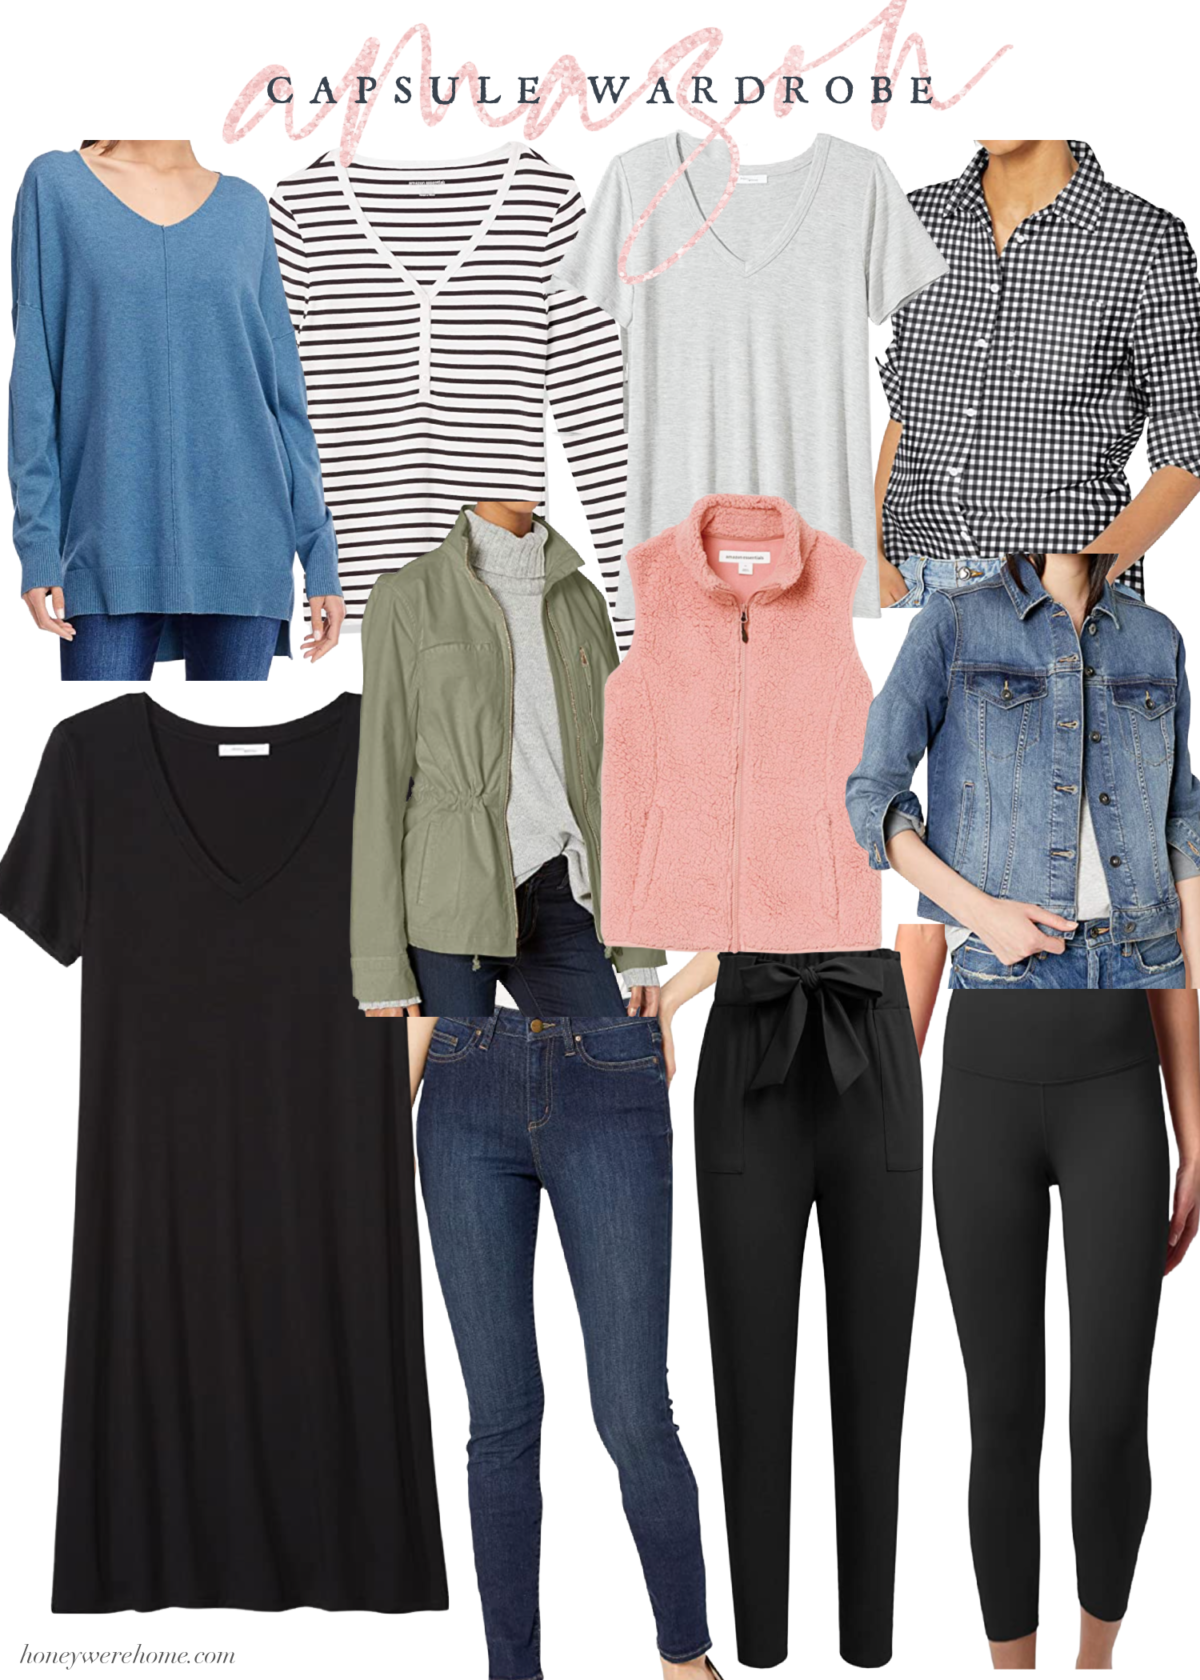 Amazon Capsule Wardrobe January 2021.png